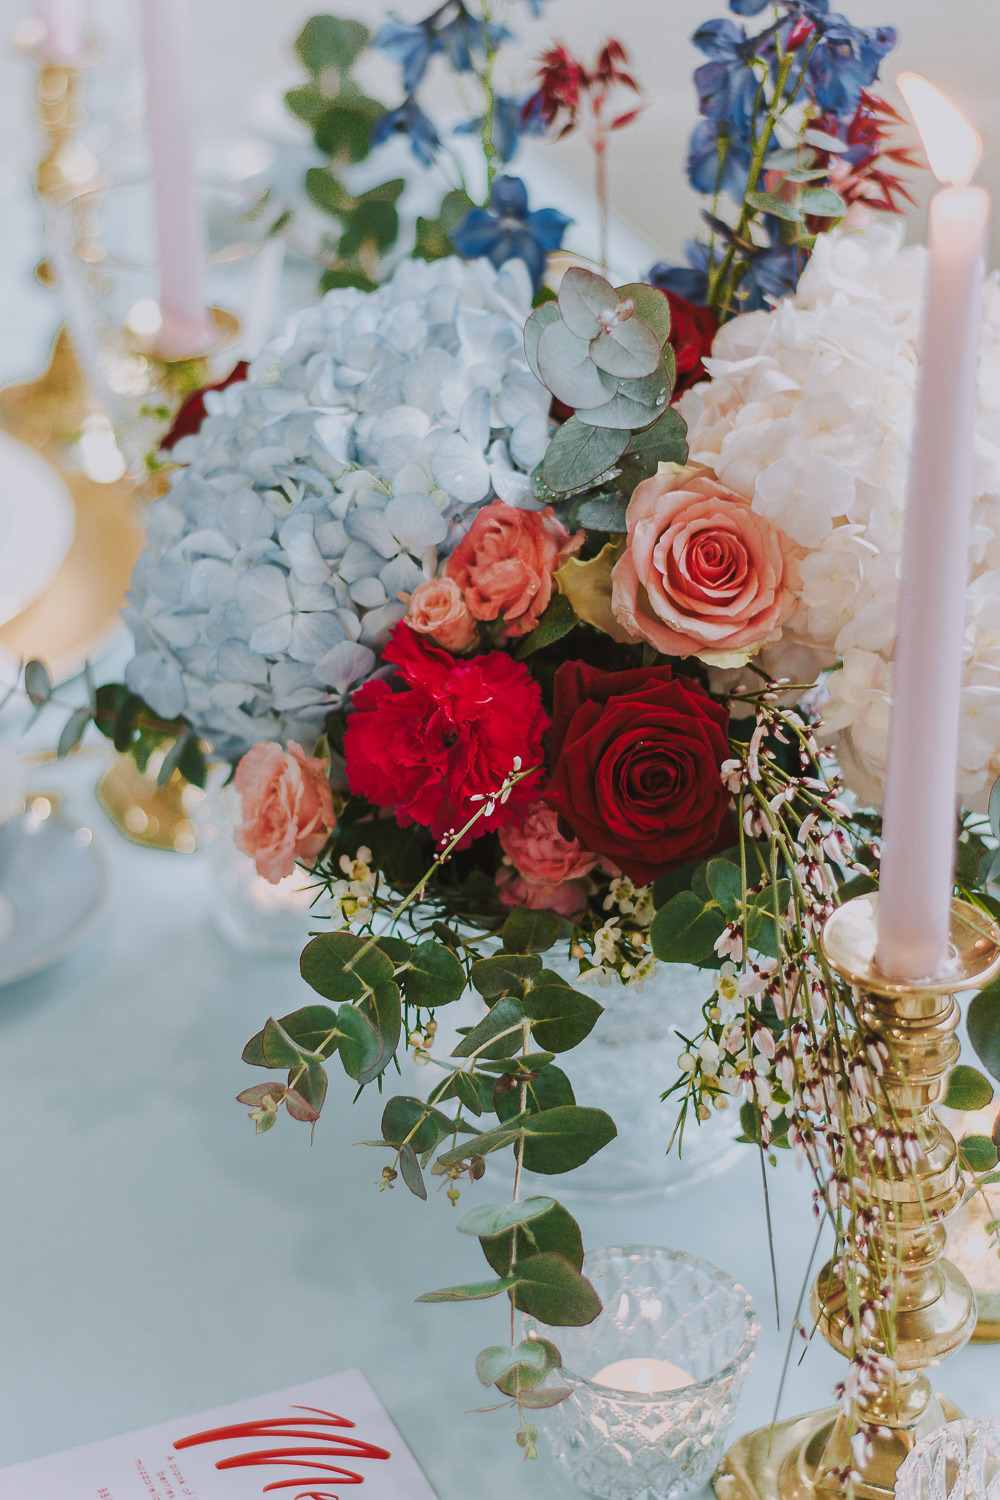 Table Flowers Centrepiece Red Pink Blue Hydrangea Rose Wes Anderson William Morris Wedding Ideas Jessica Hill Photography